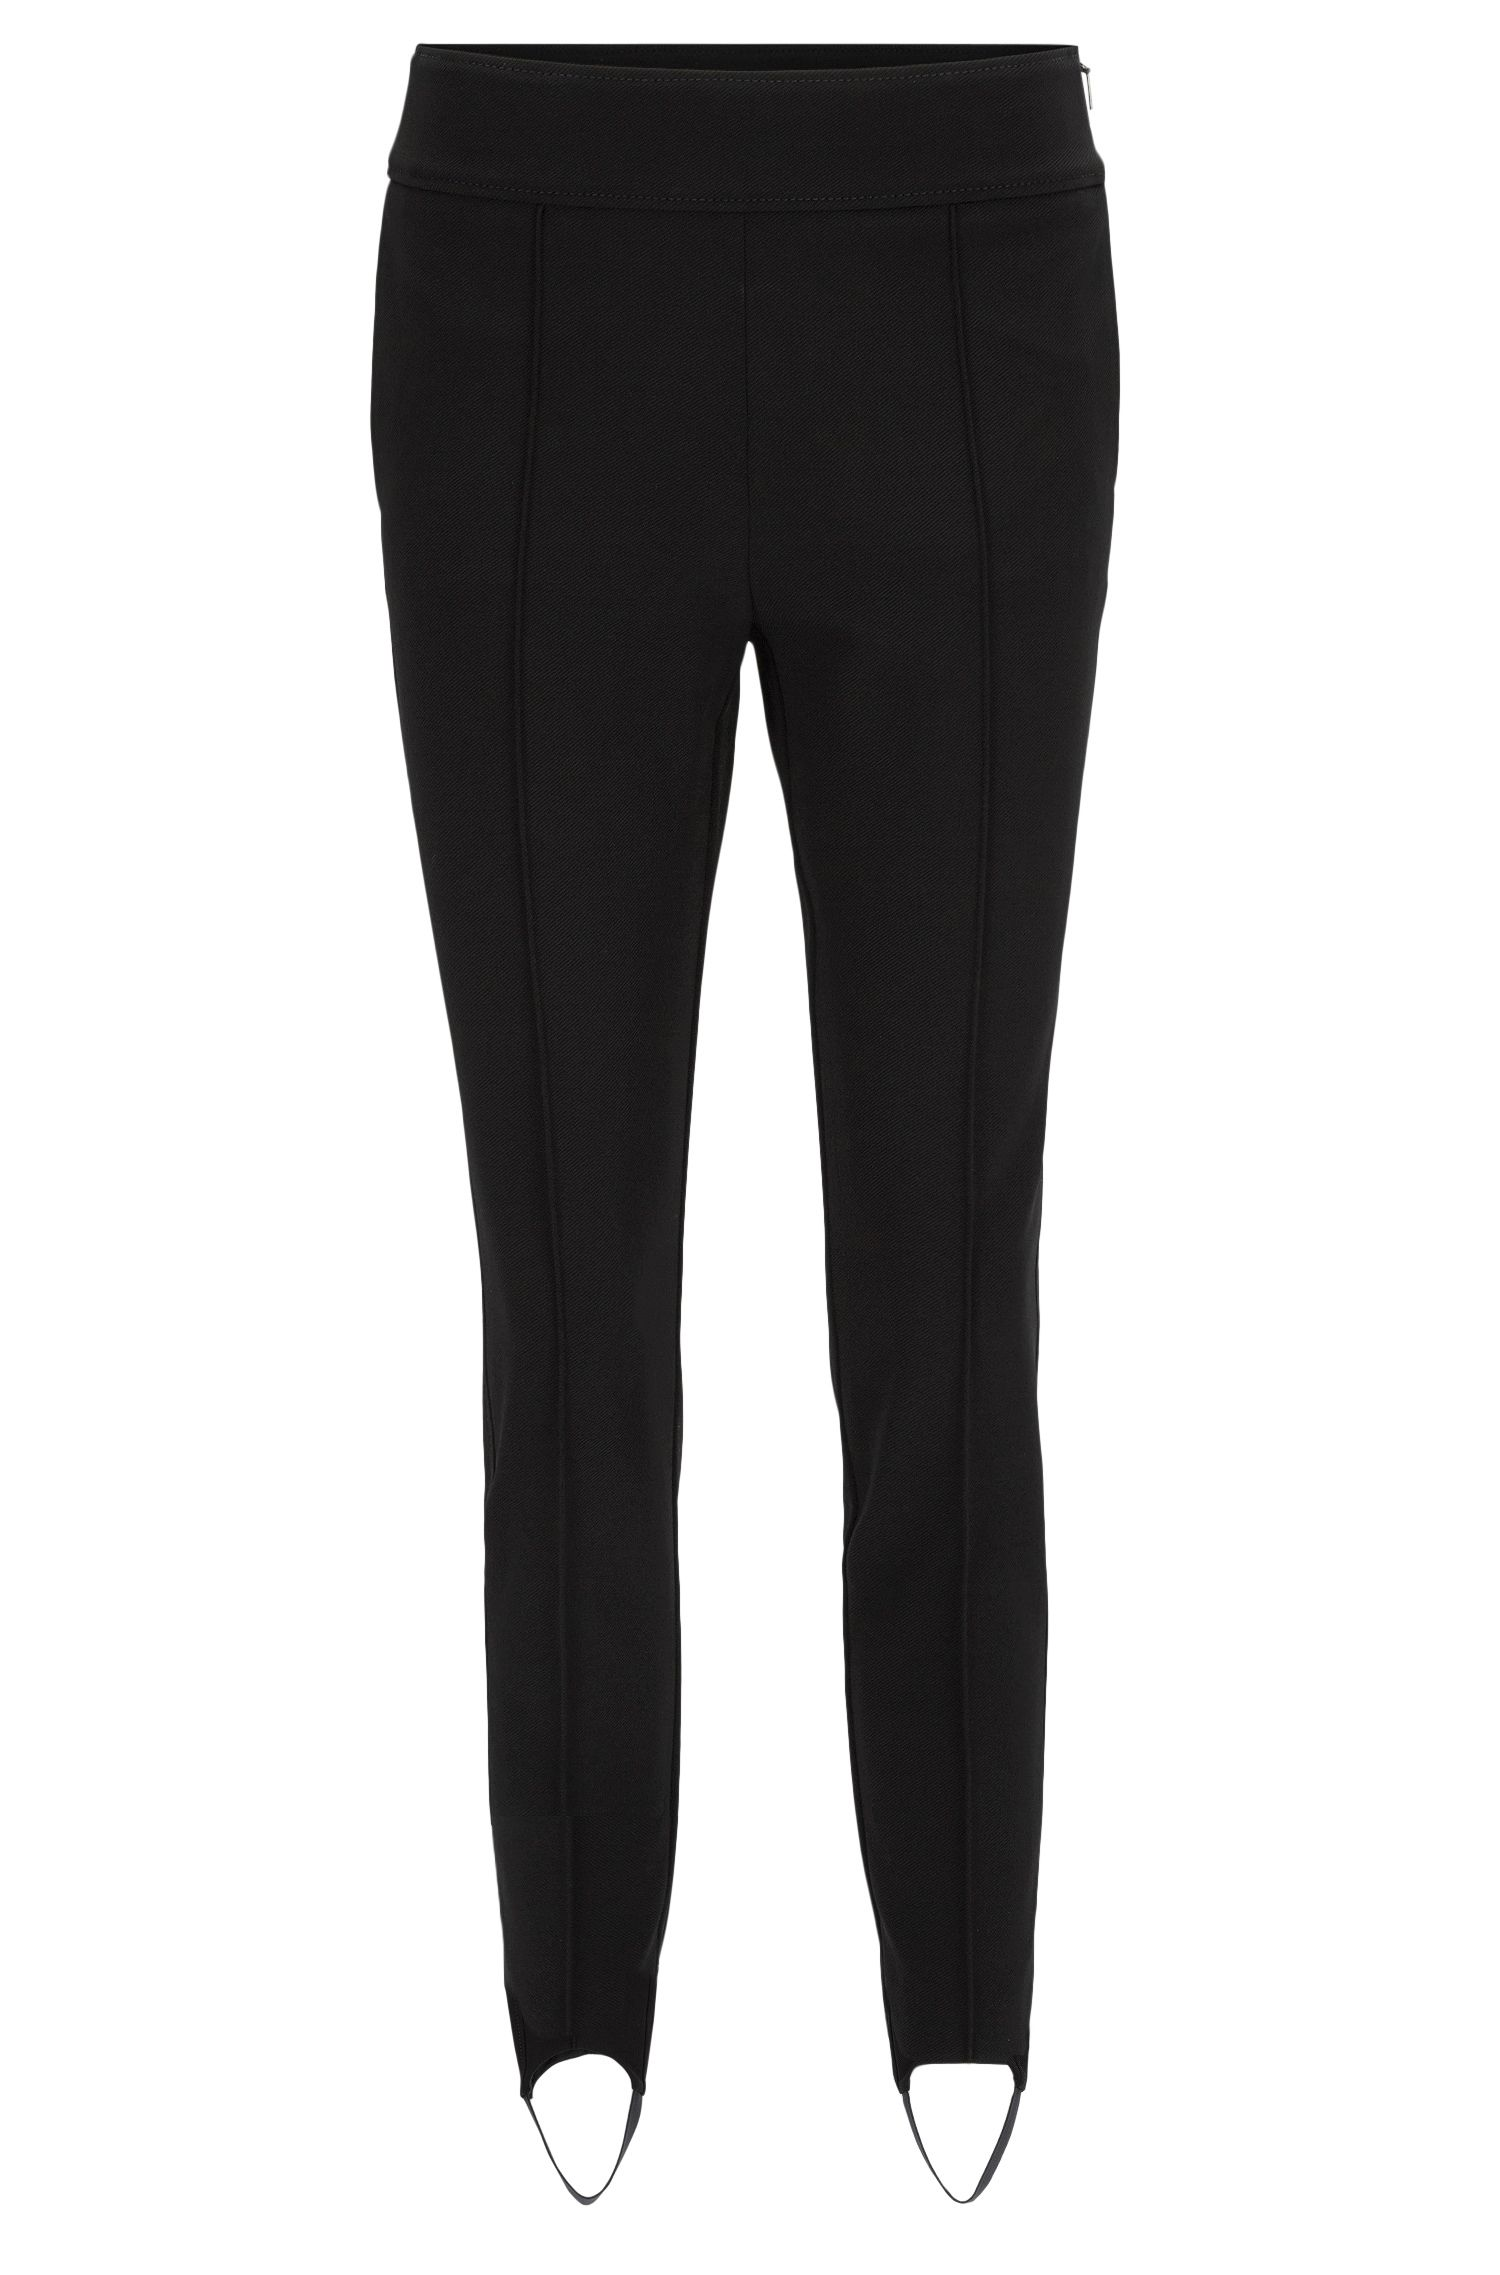 Pantaloni con staffa slim fit in twill elasticizzato, Nero